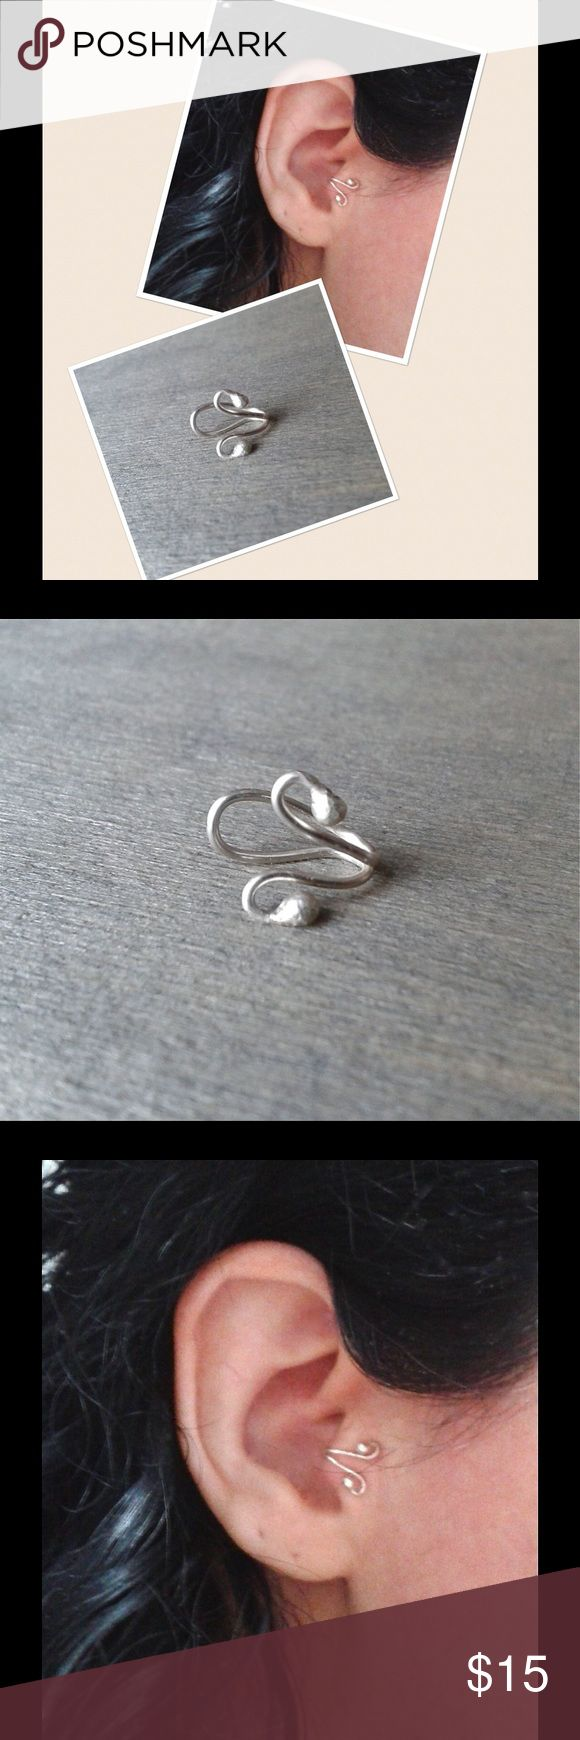 999 Sterling silver Tragus Cuff A cute, trendy little swirly ball End Travis Cuff made of fine .999 Sterling silver. ⭐️NOTE⭐️ Fine 999 Sterling silver is 99.9% pure silver while 925 Sterling silver is only 92.5% silver. Completely hypoallergenic and nickel free. Comes gift boxed ready for gift giving. nejd Jewelry Earrings